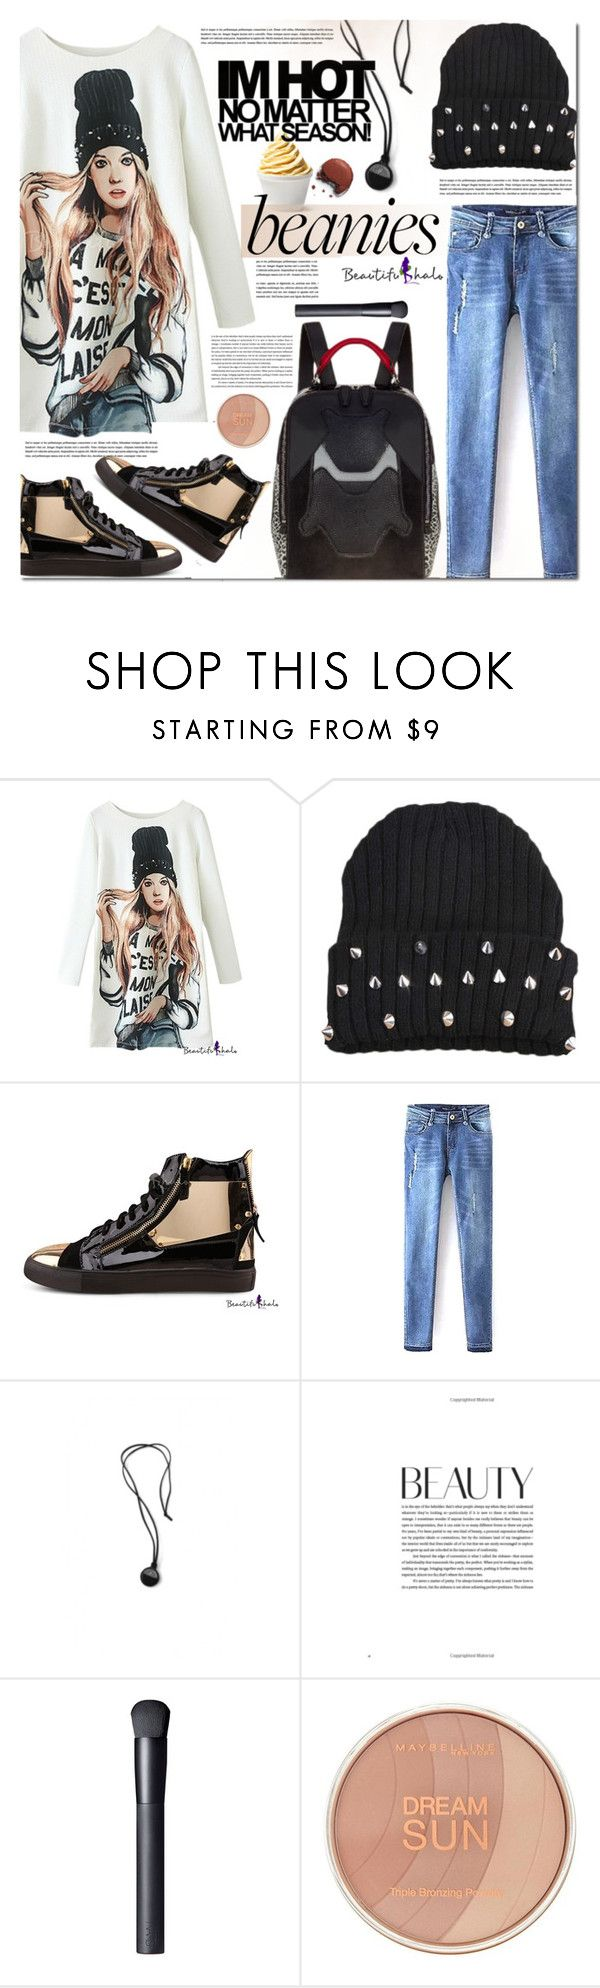 """Hat Head: Beanies beautifulhalo"" by barbarela11 ❤ liked on Polyvore featuring Disney, NARS Cosmetics, Maybelline, beanies and bhalo"